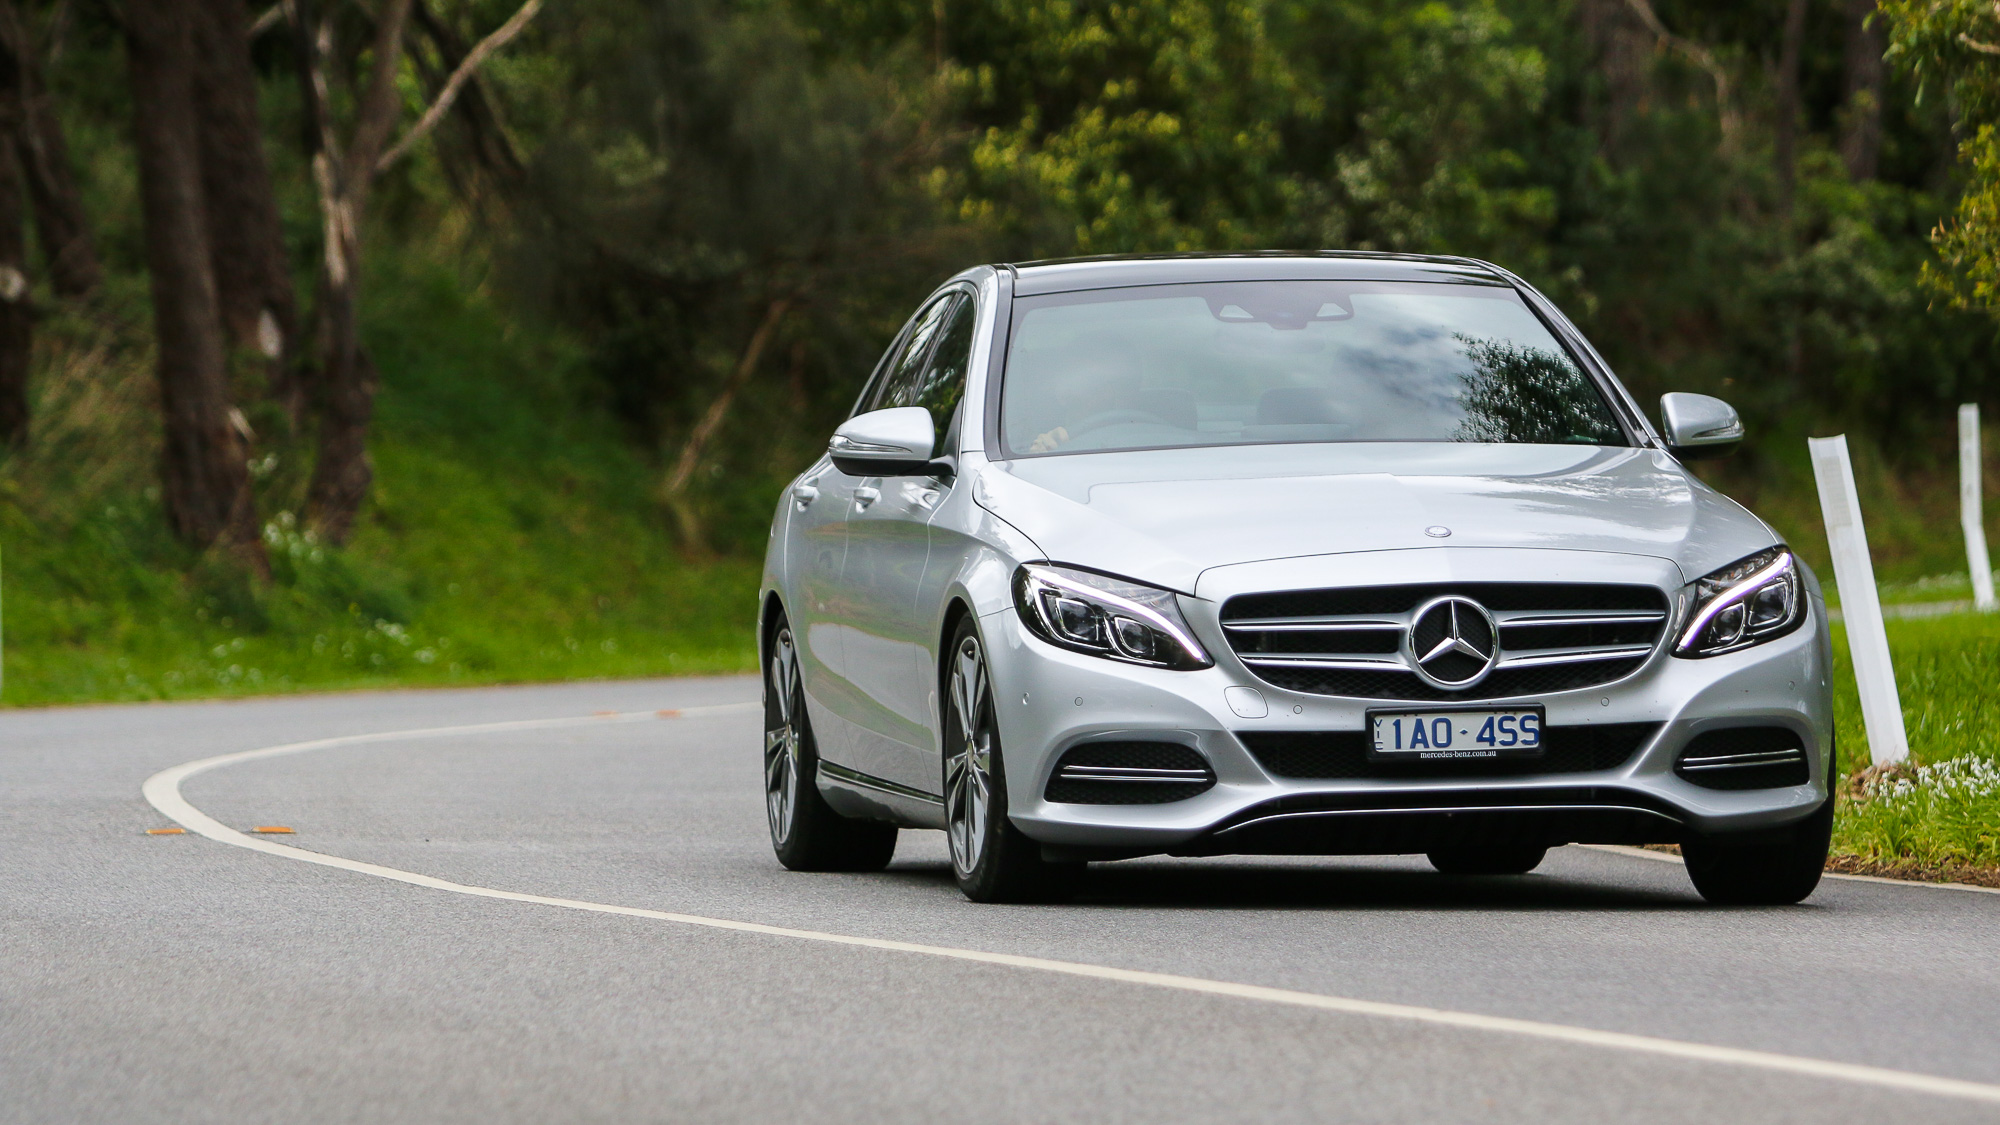 Mercedes-benz c200 photo - 4